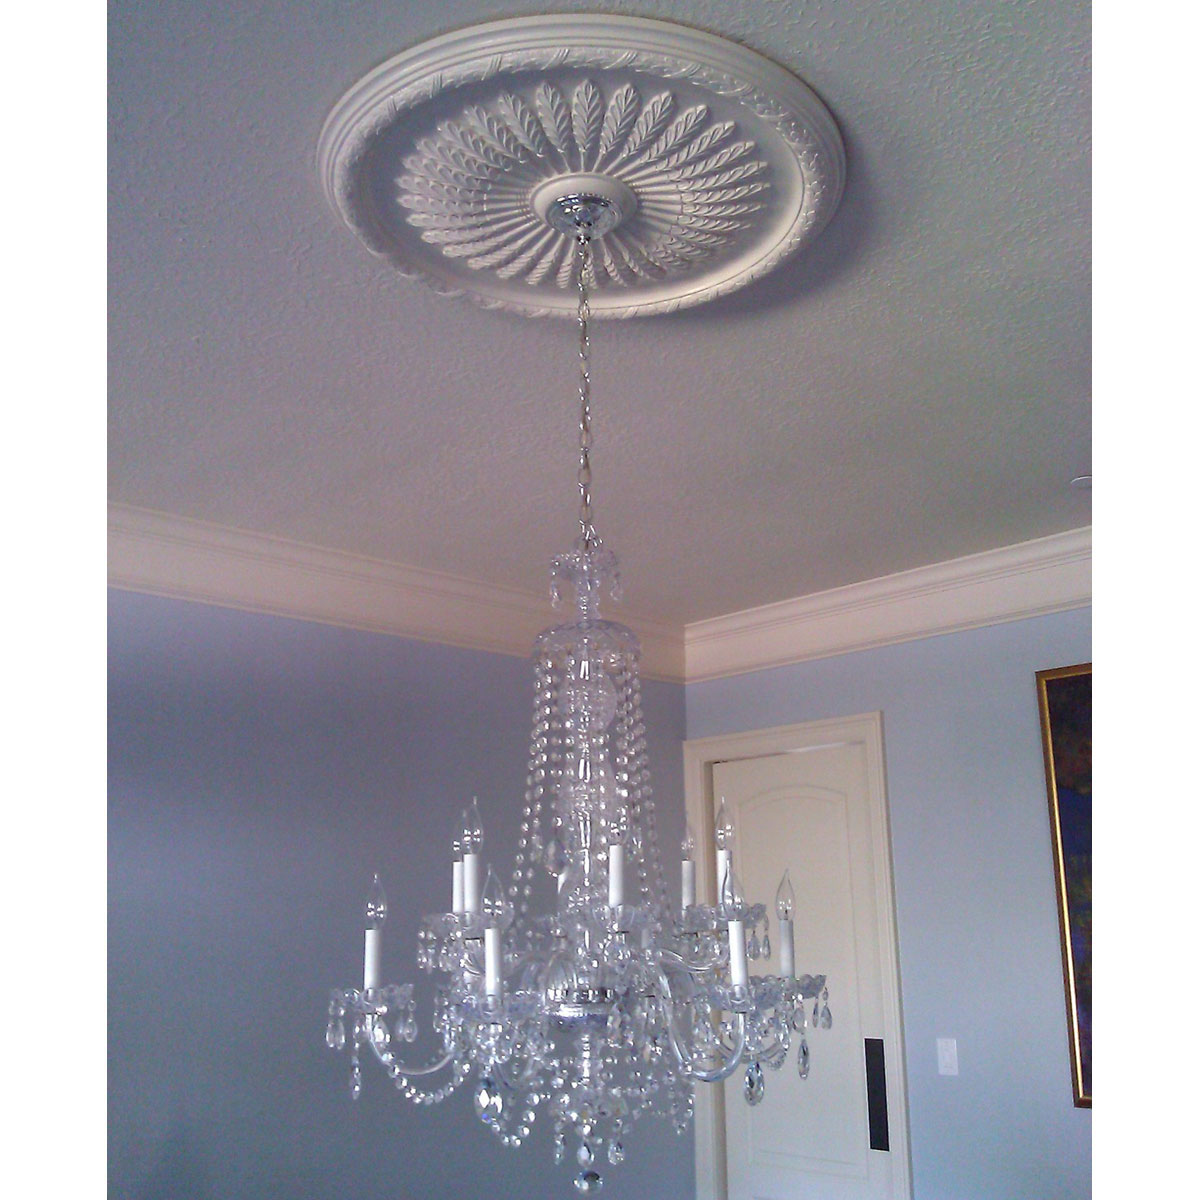 chandeliers on medallion pinterest for ceiling s medallions lindalcoffey ceilings interior best blankets images